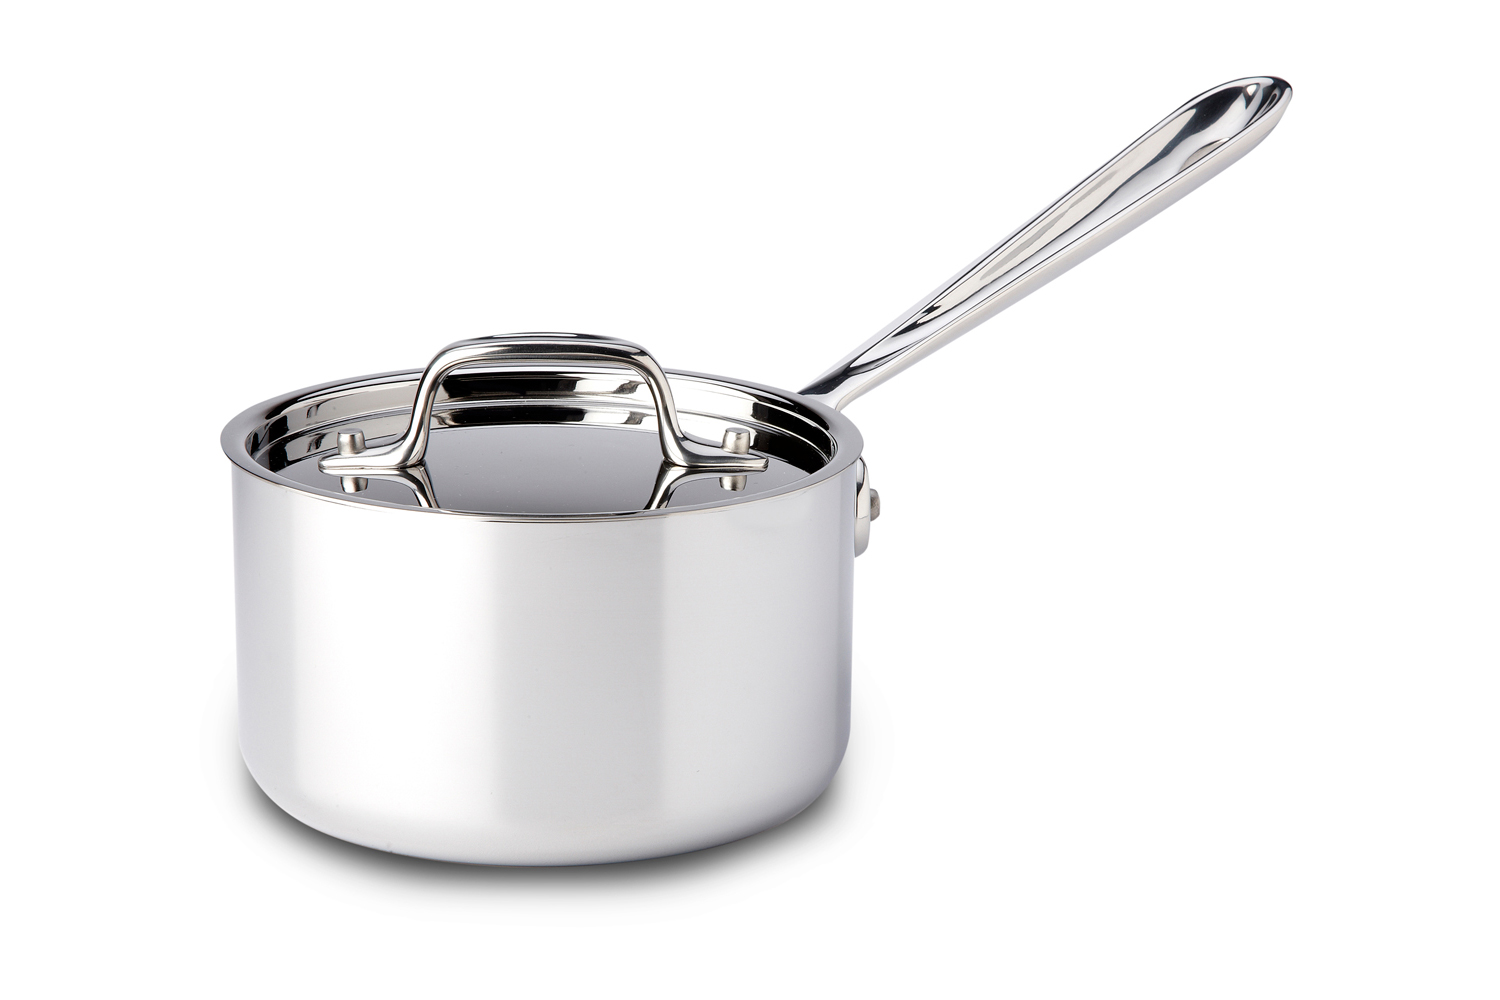 All-Clad d3 Tri-Ply Stainless Steel 1 qt. Sauce Pan w/Lid